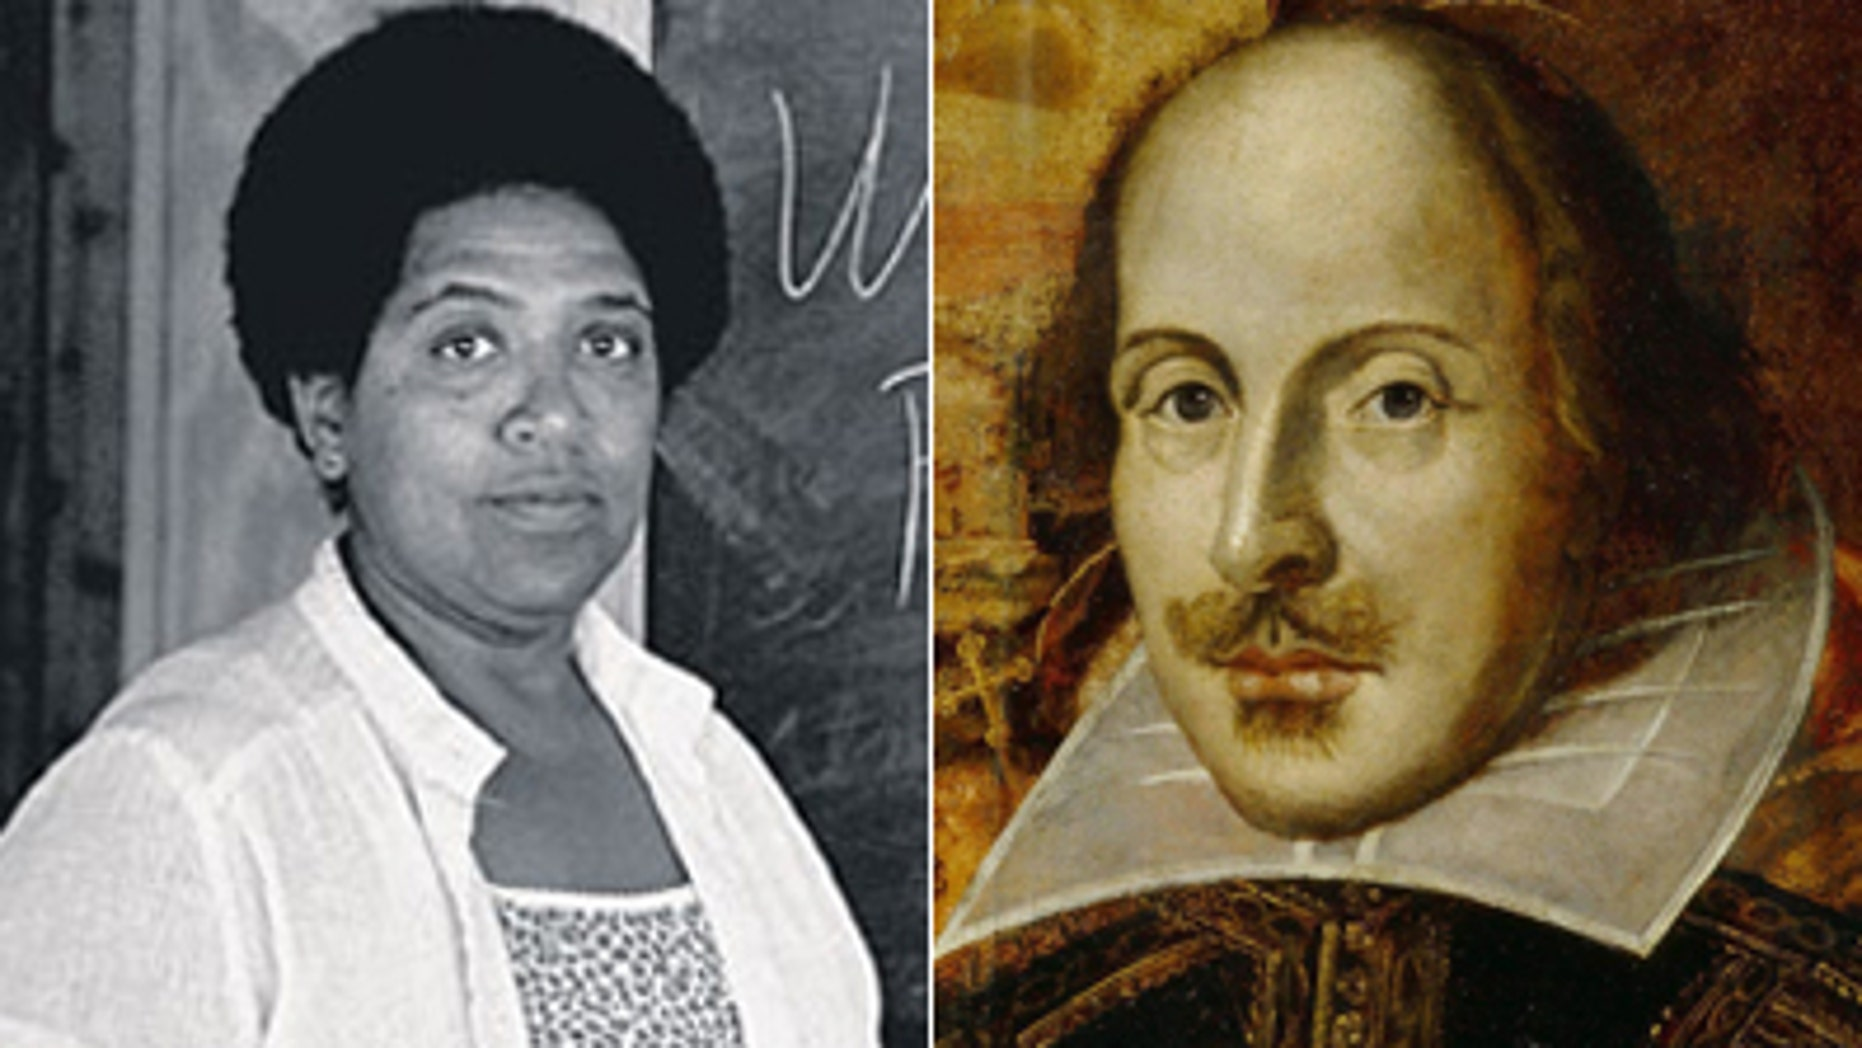 Audre Lorde and William Shakespeare